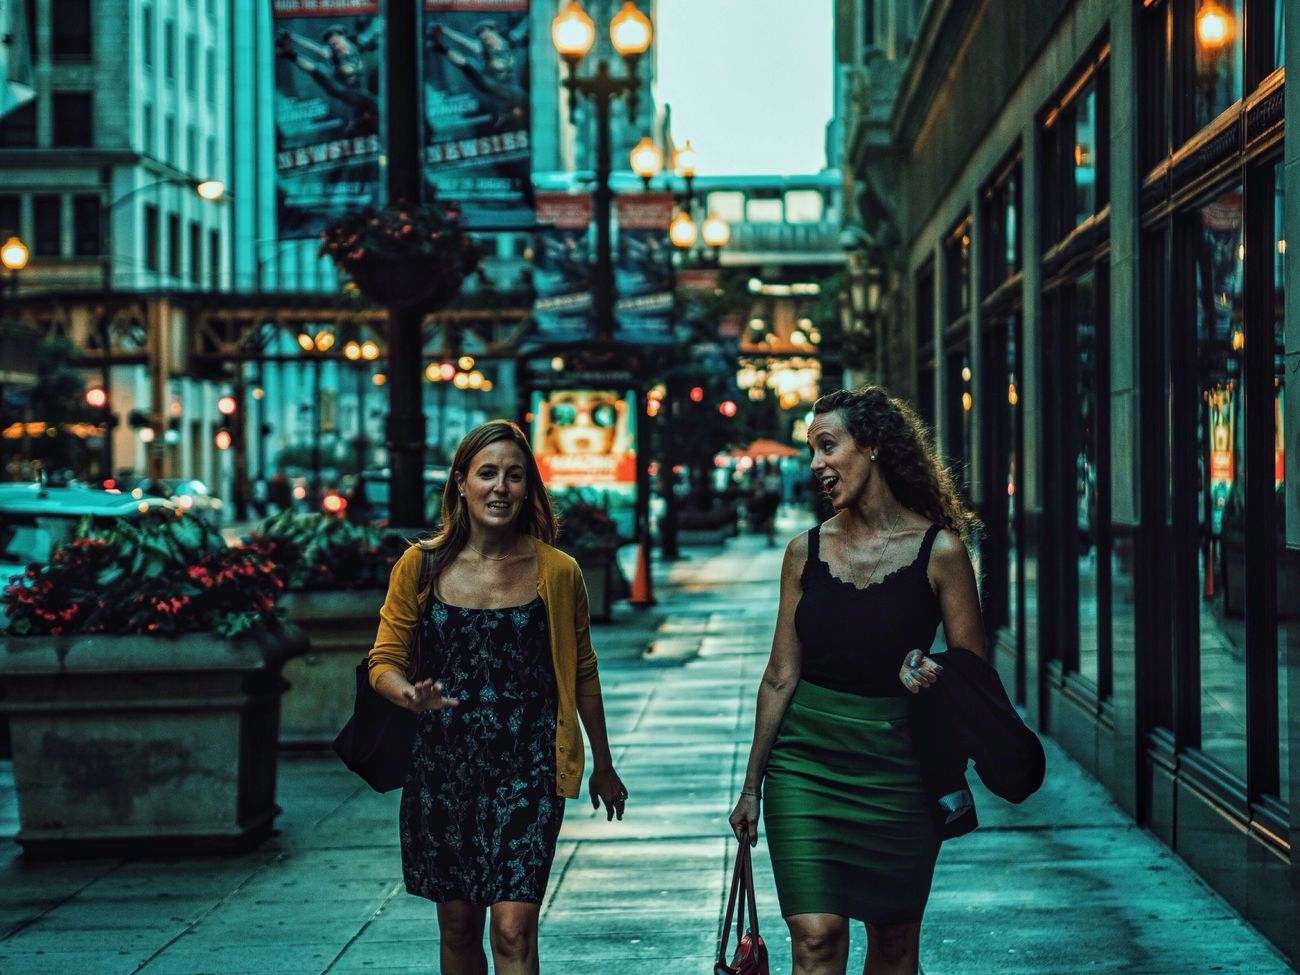 Street Photography Candid Moments Architecture People Capture The Moment EyeEm Best Shots